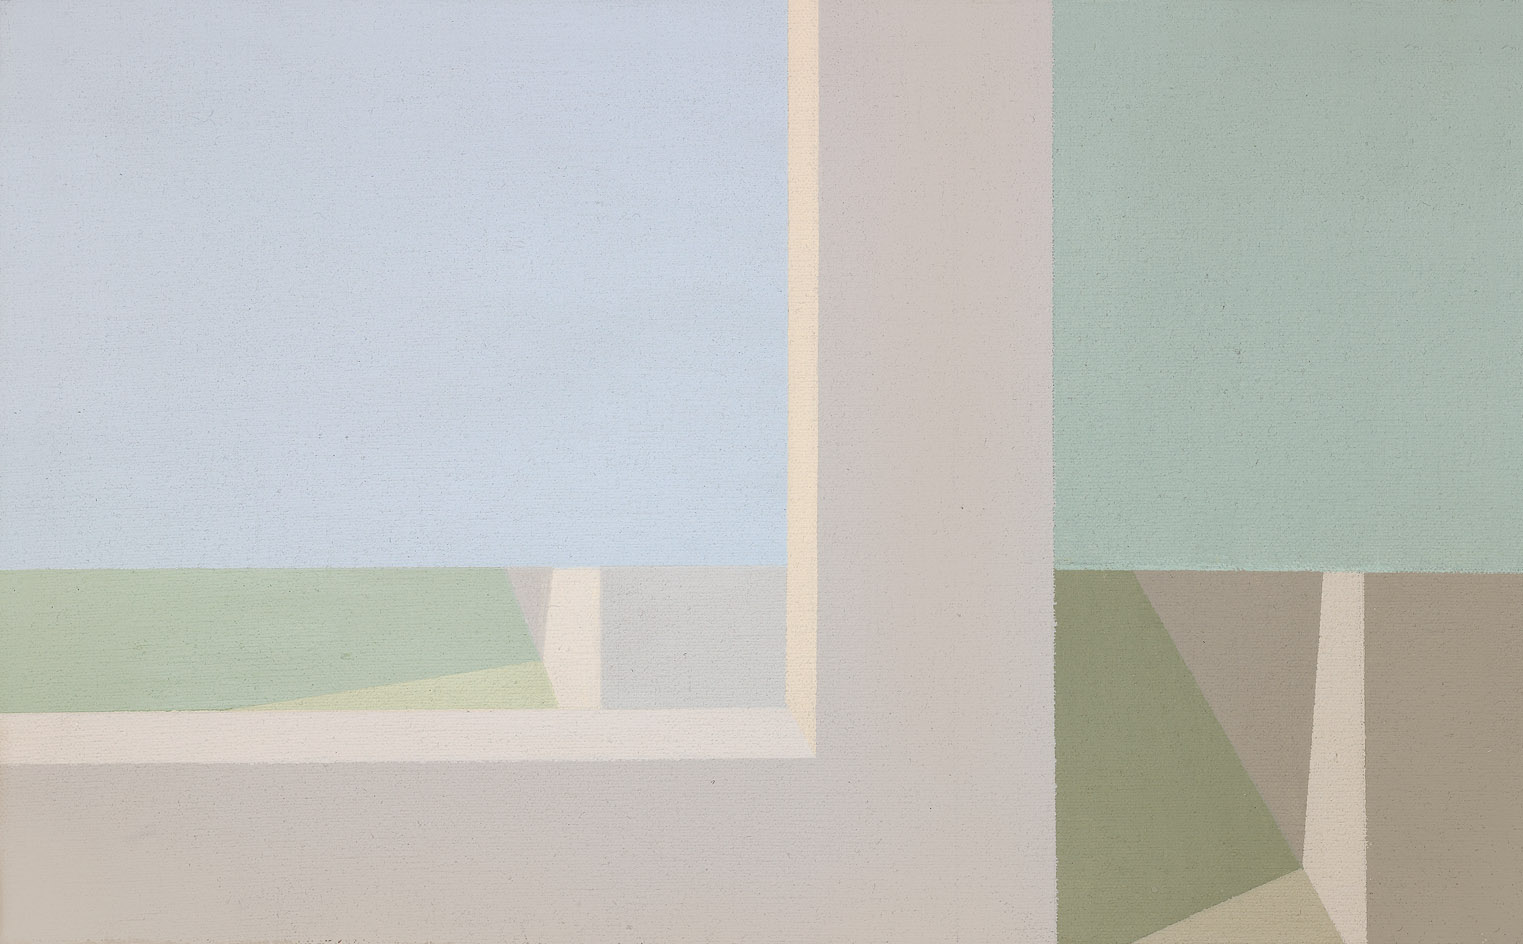 Double View , 1973  acrylic on canvas 10 x 16 inches; 25.4 x 40.6 centimeters